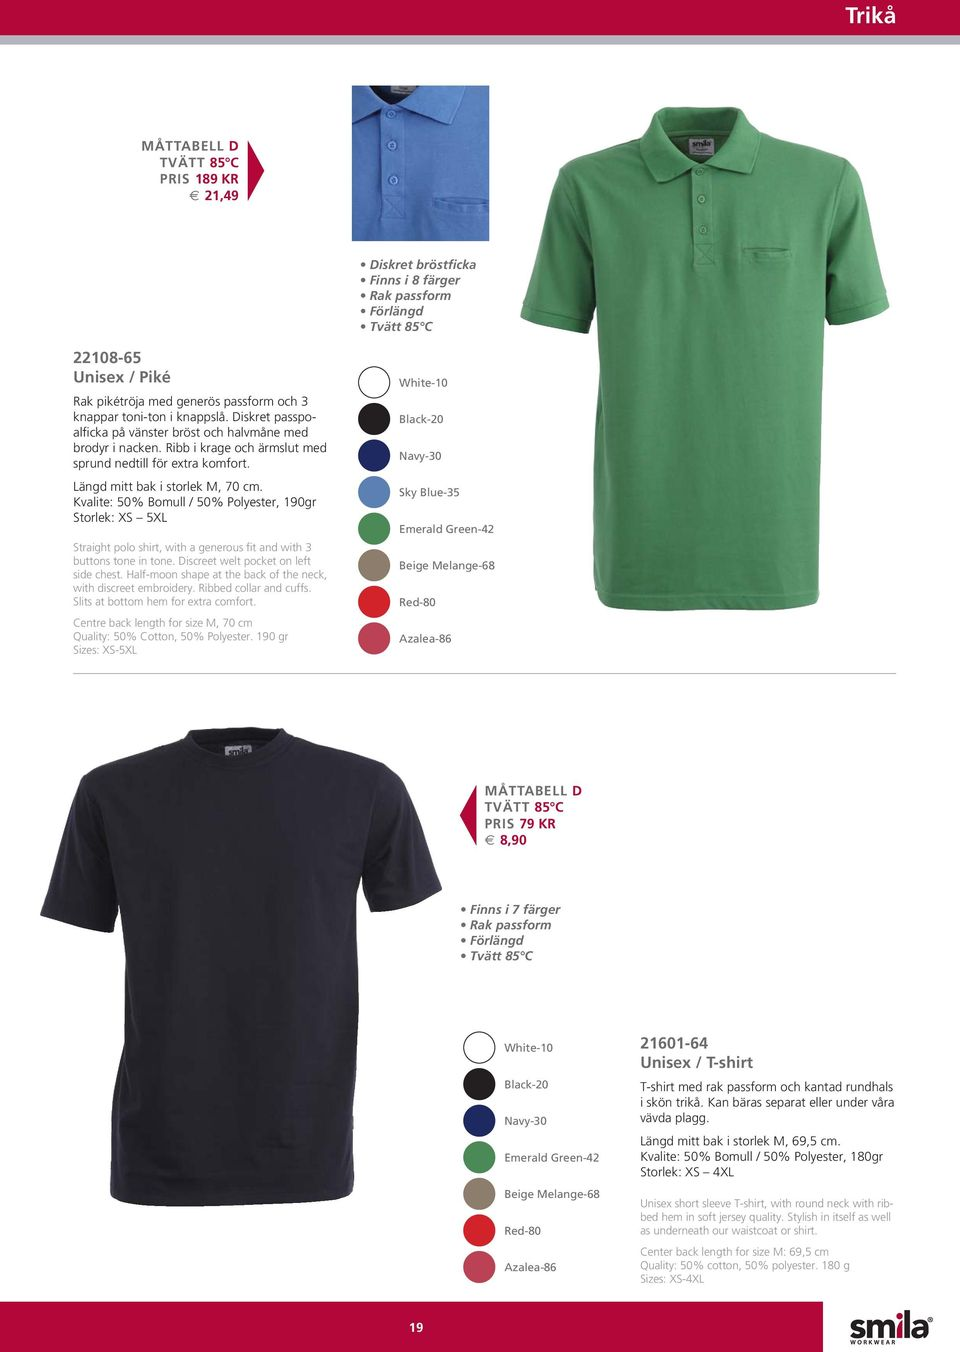 Kvalite: 50% Bomull / 50% Polyester, 190gr Storlek: XS 5XL Straight polo shirt, with a generous fit and with 3 buttons tone in tone. Discreet welt pocket on left side chest.